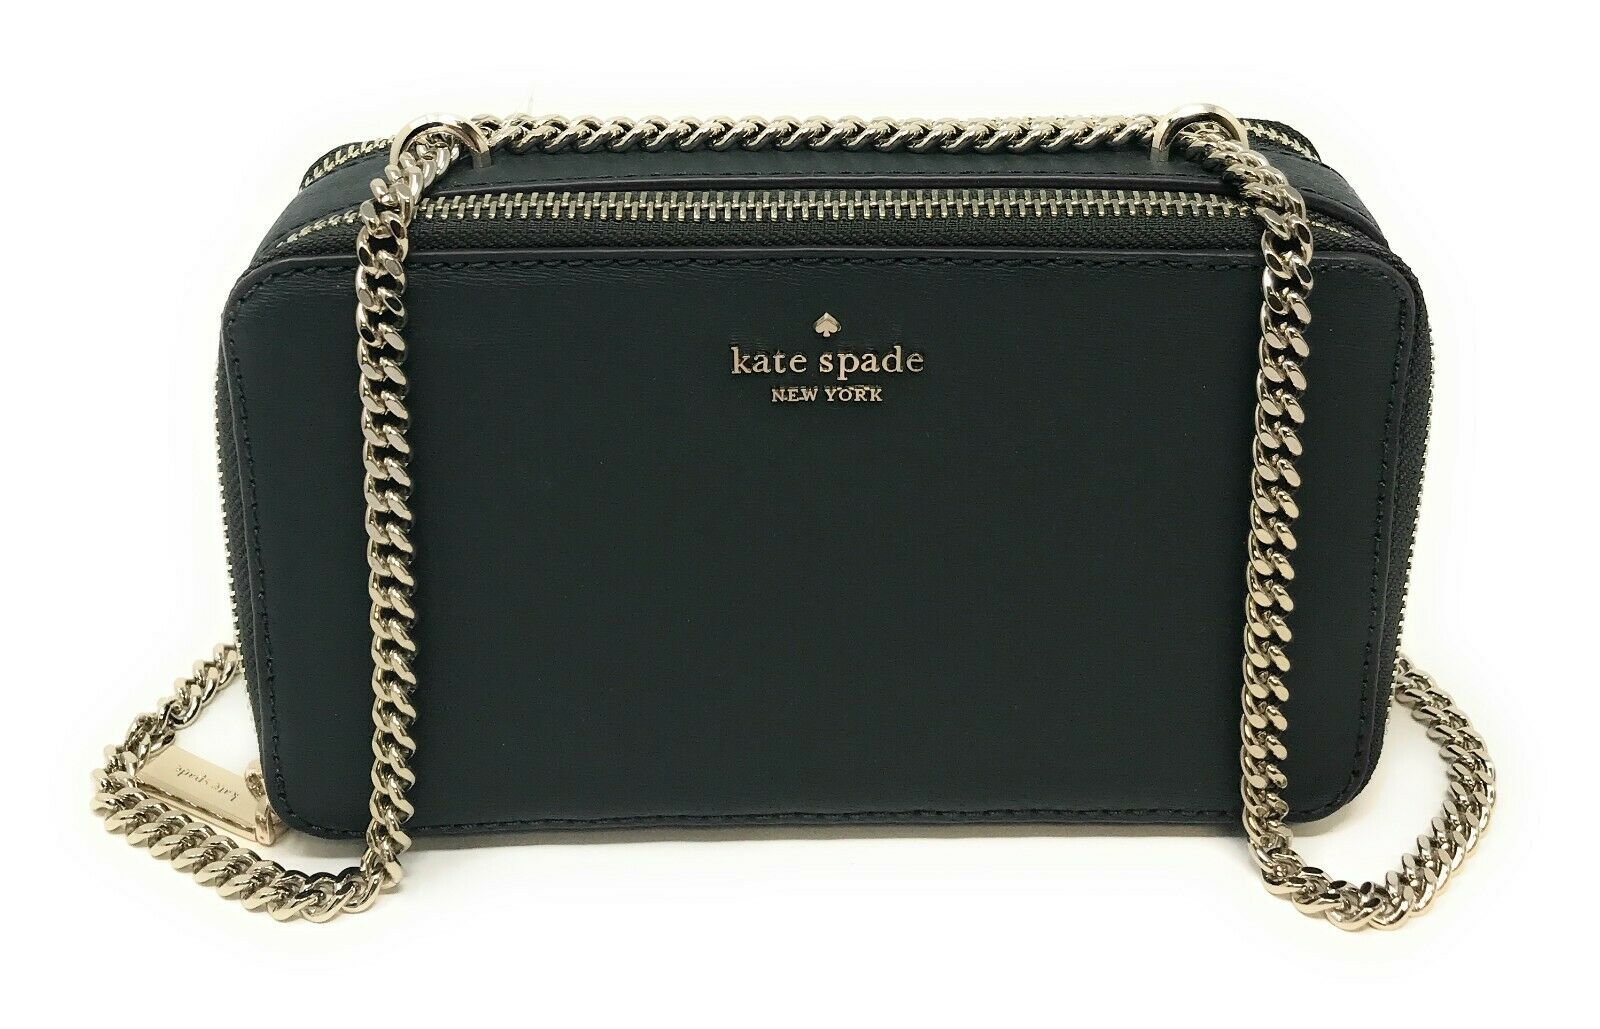 Kate Spade Double Zip Chain Connie Leather Crossbody Bag Clutch WKRU6127